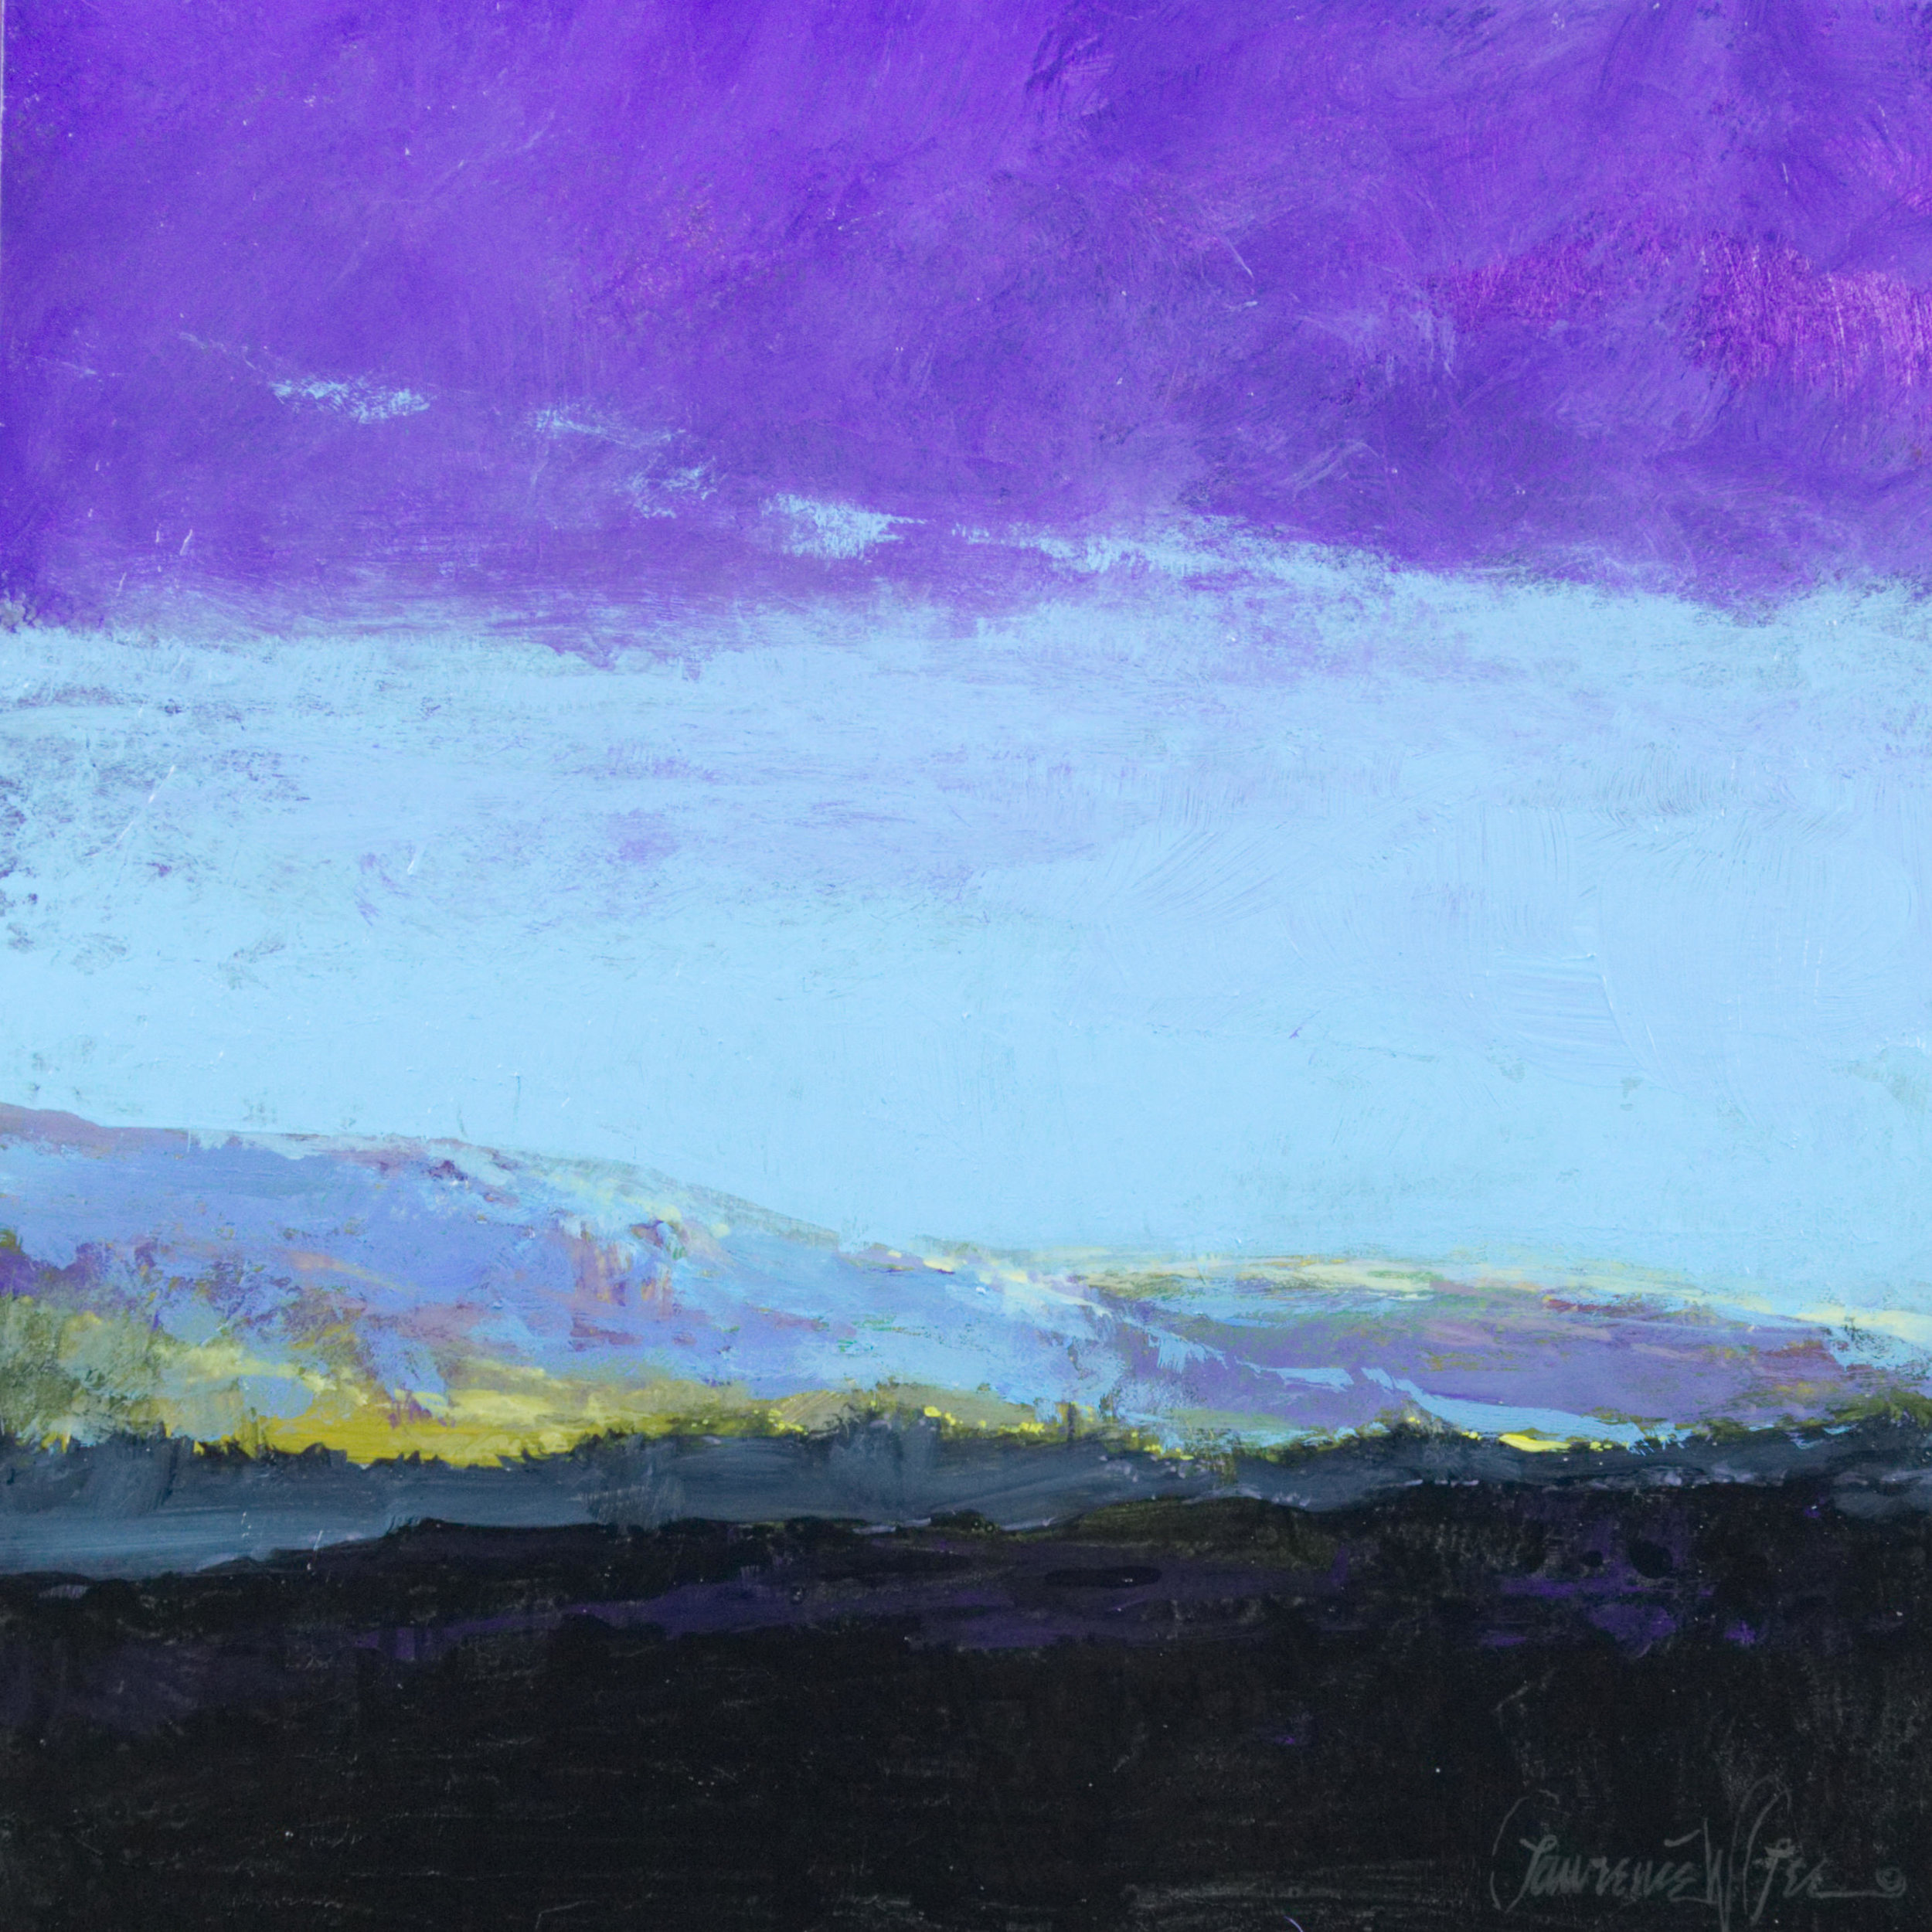 """""""Light In The Valley"""" 8""""x8"""" Acrylic on panel by Lawrence W. Lee"""